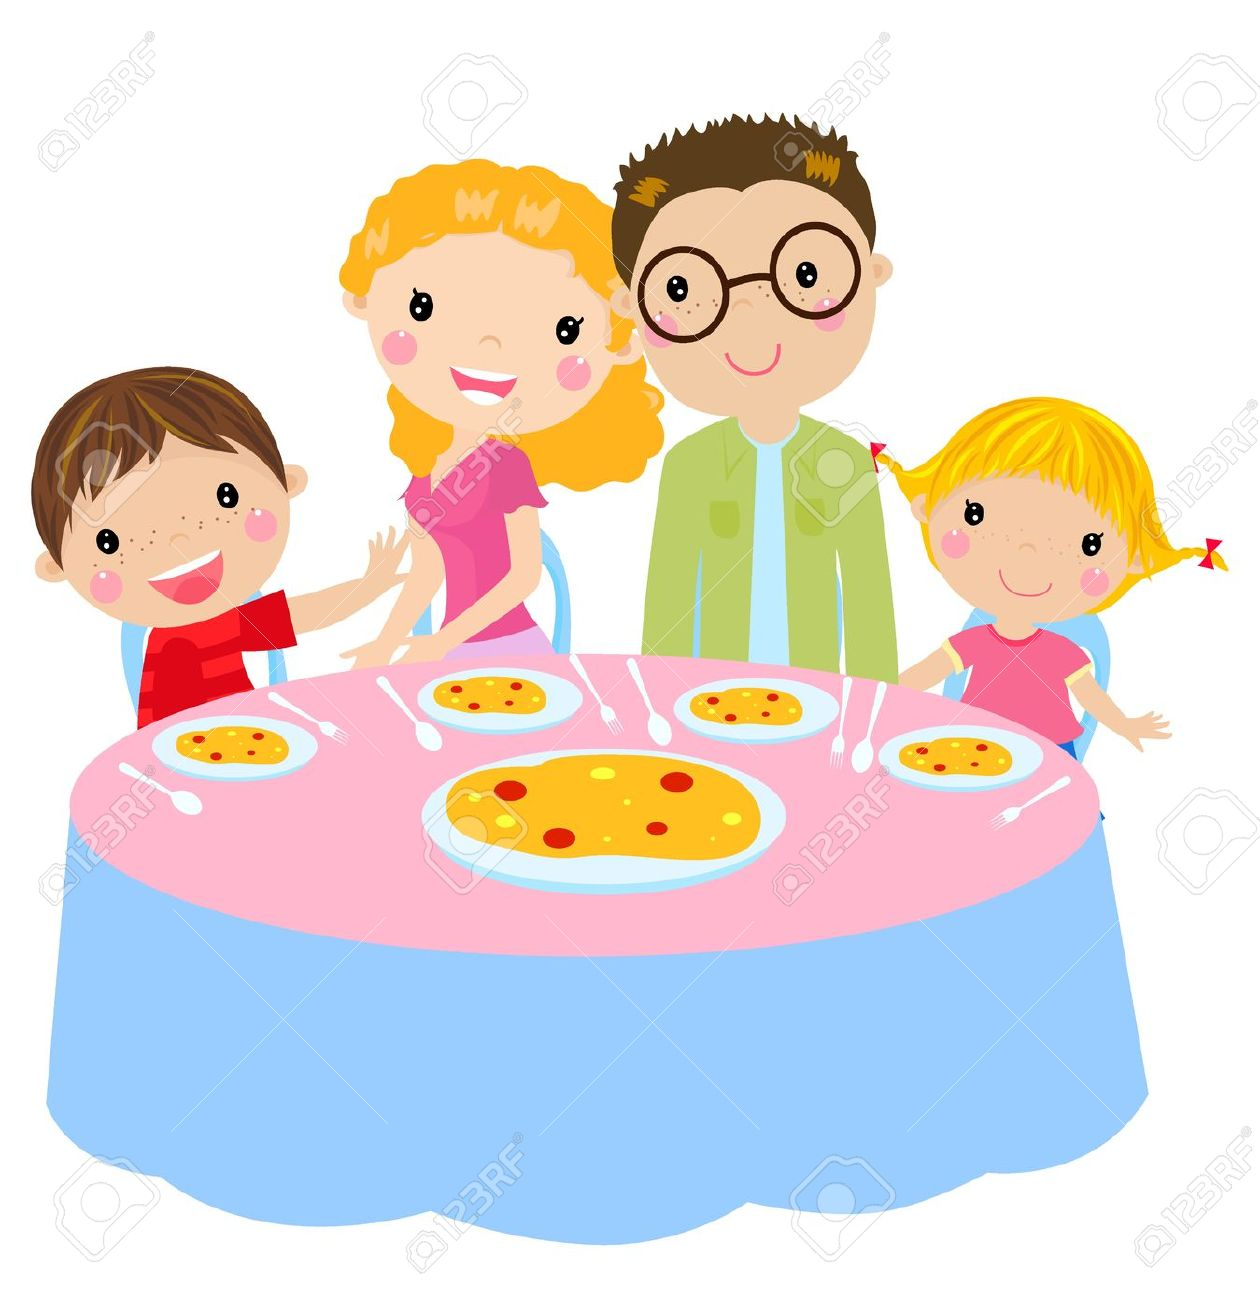 Familie beim essen clipart picture royalty free download Familie Essen Lizenzfreie Vektorgrafiken Kaufen: 123RF picture royalty free download